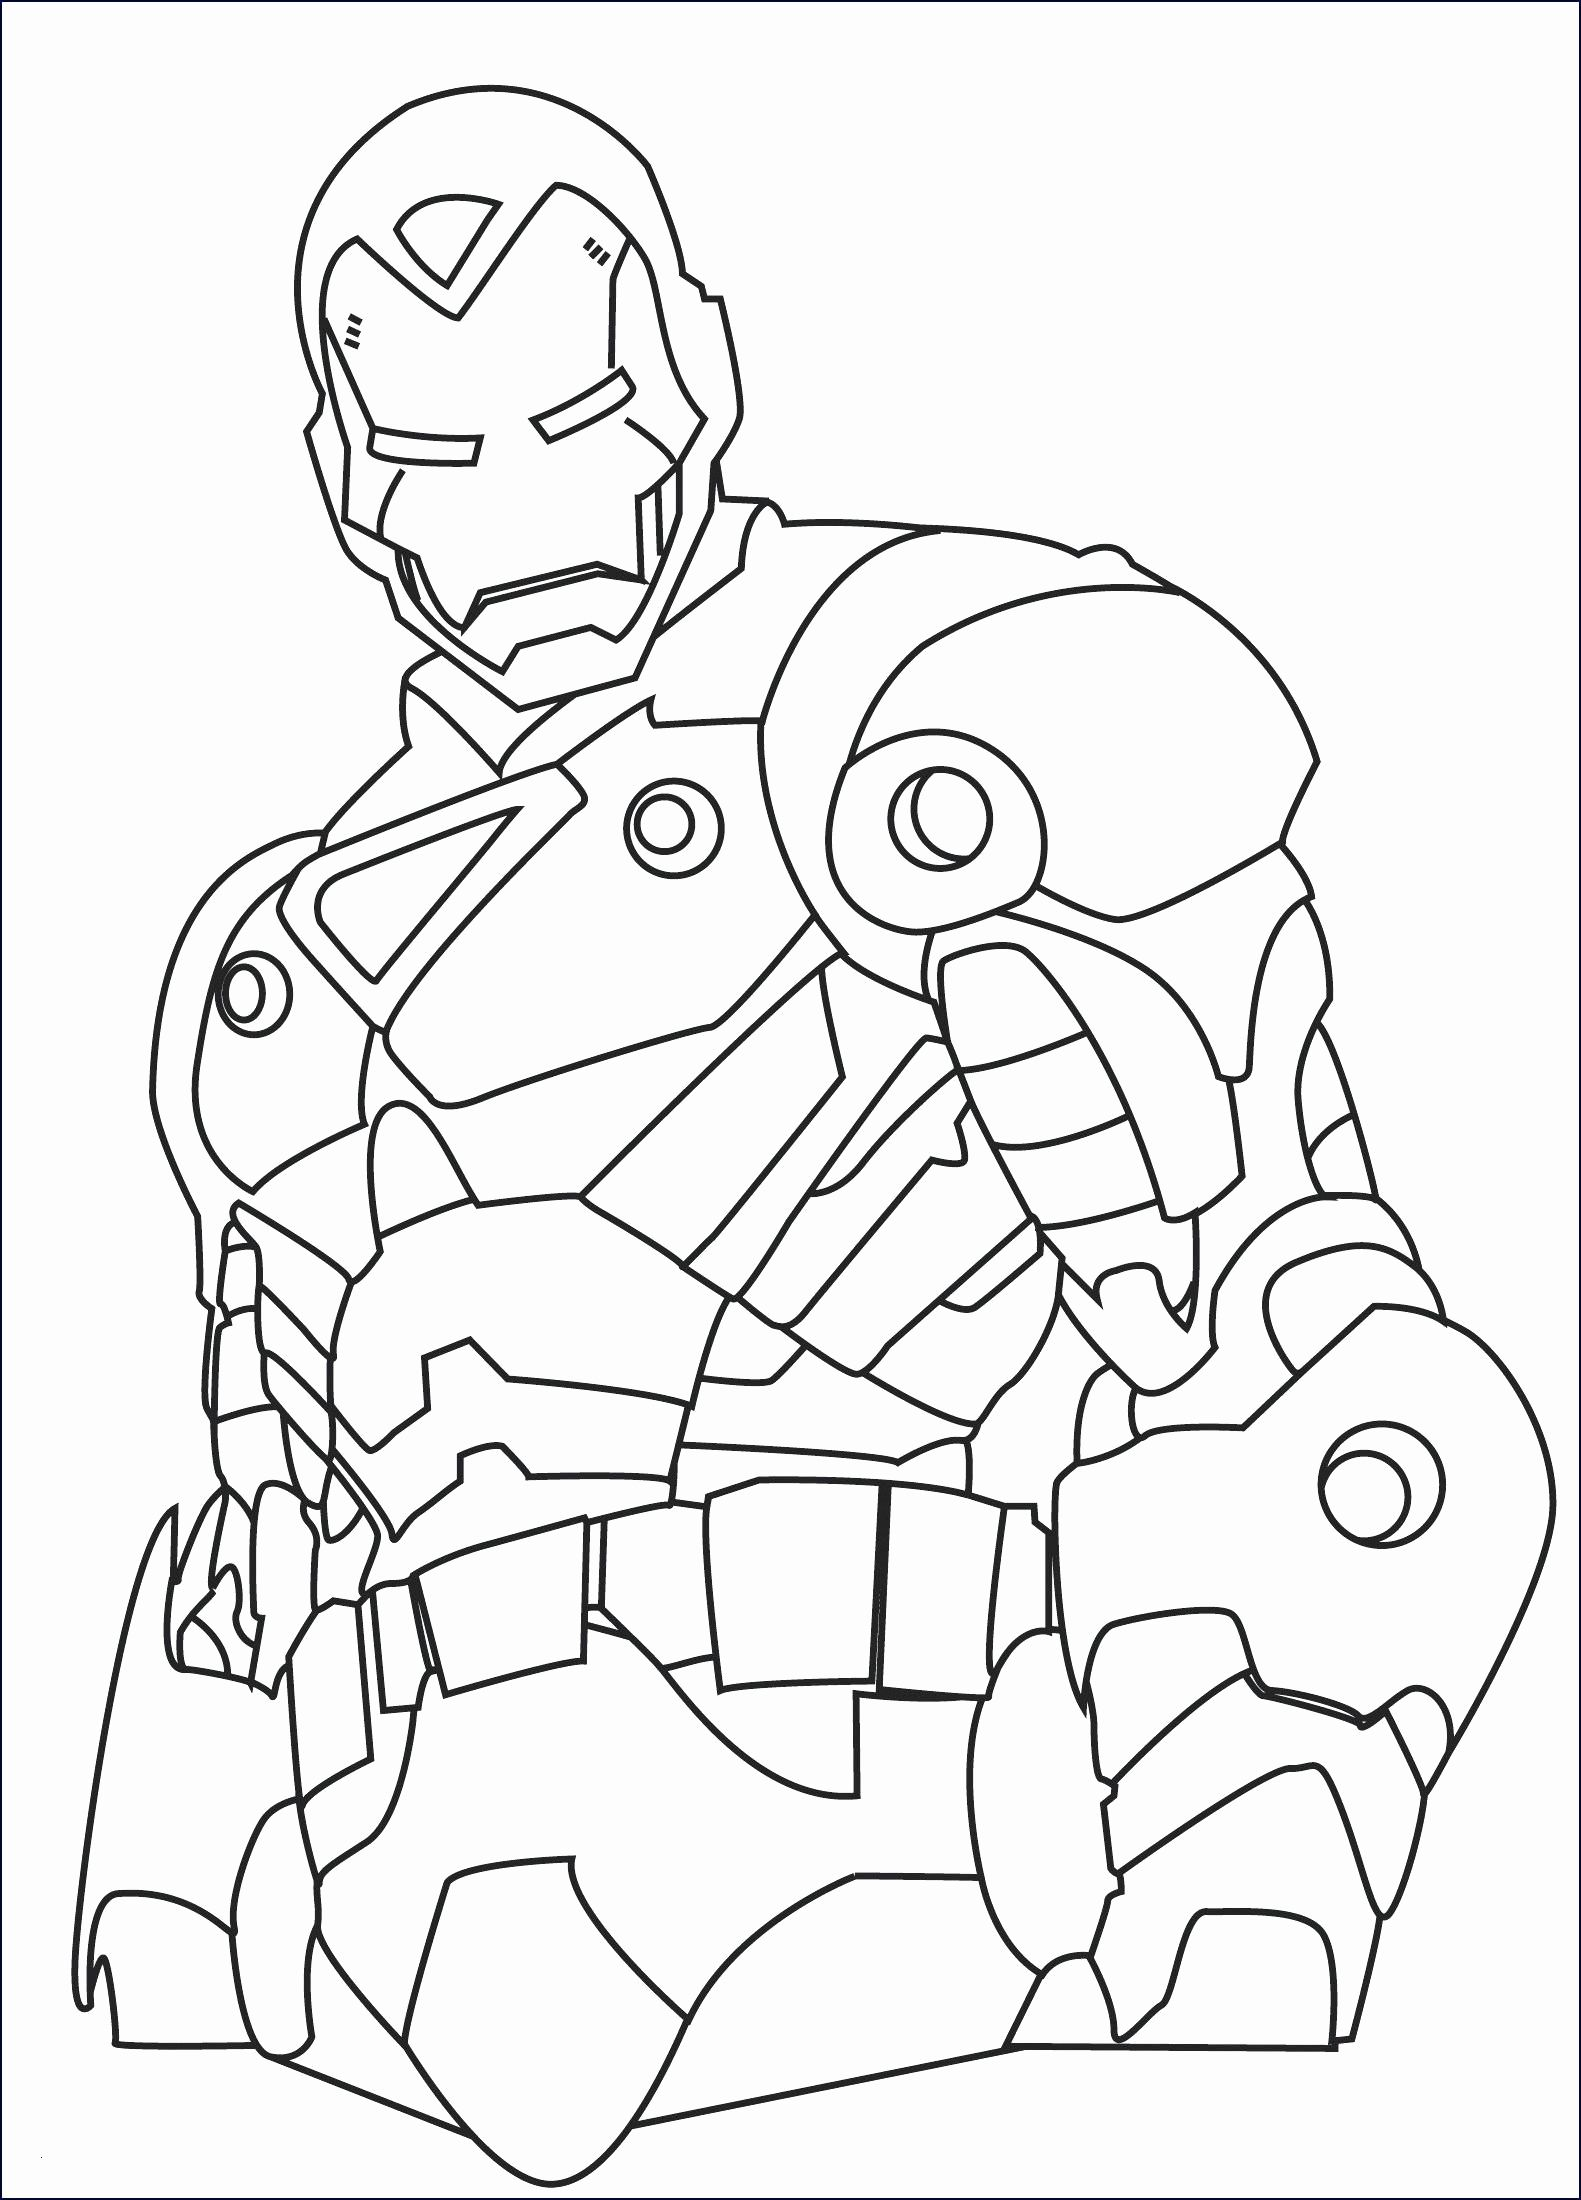 Coloring Pages For Kids Avengers Avengers Coloring Pages Avengers Coloring Superhero Coloring